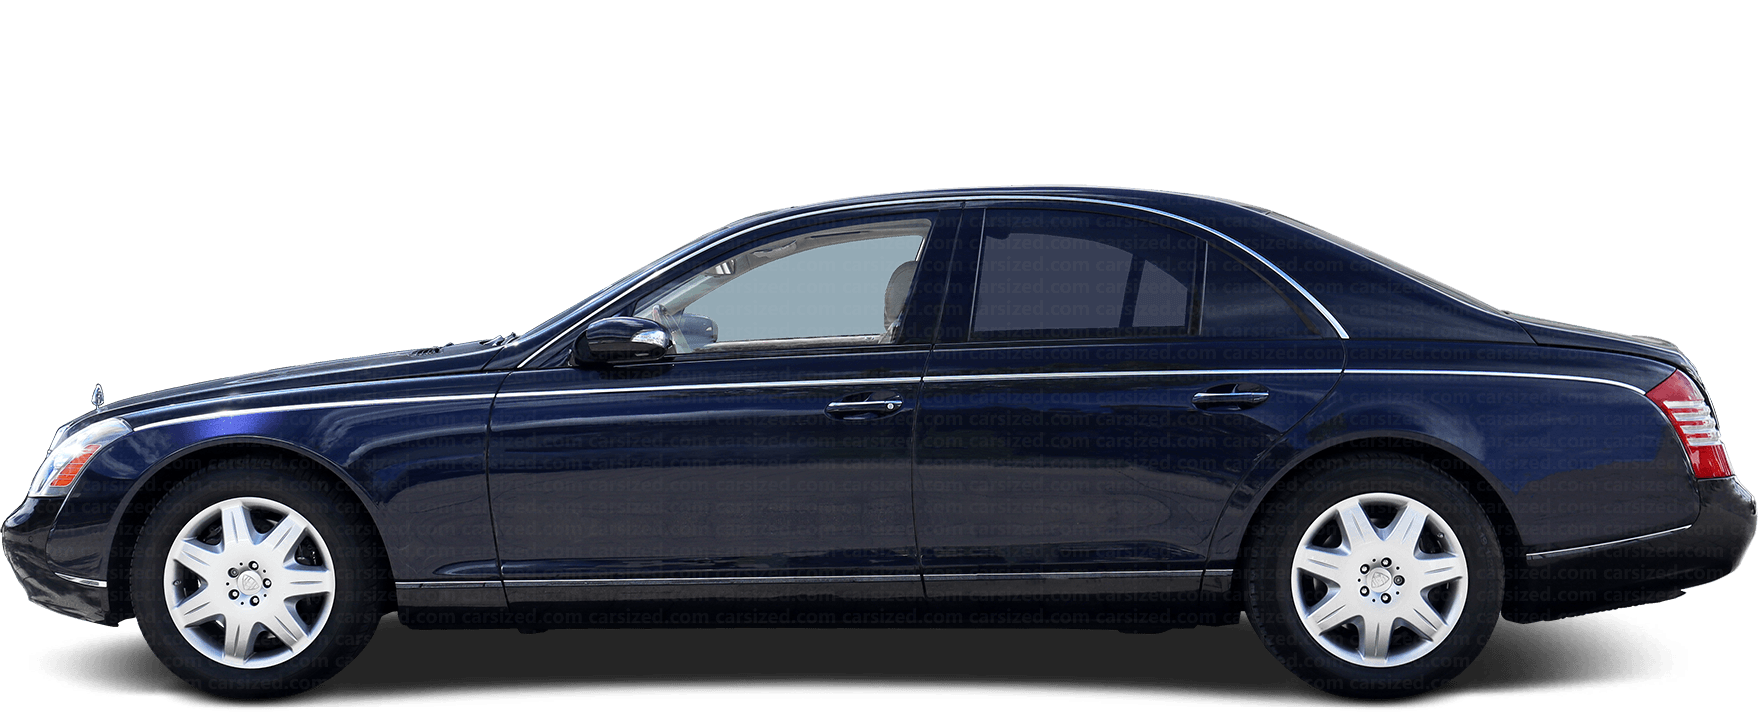 Maybach 57 Sedan 2002-2012 Side View